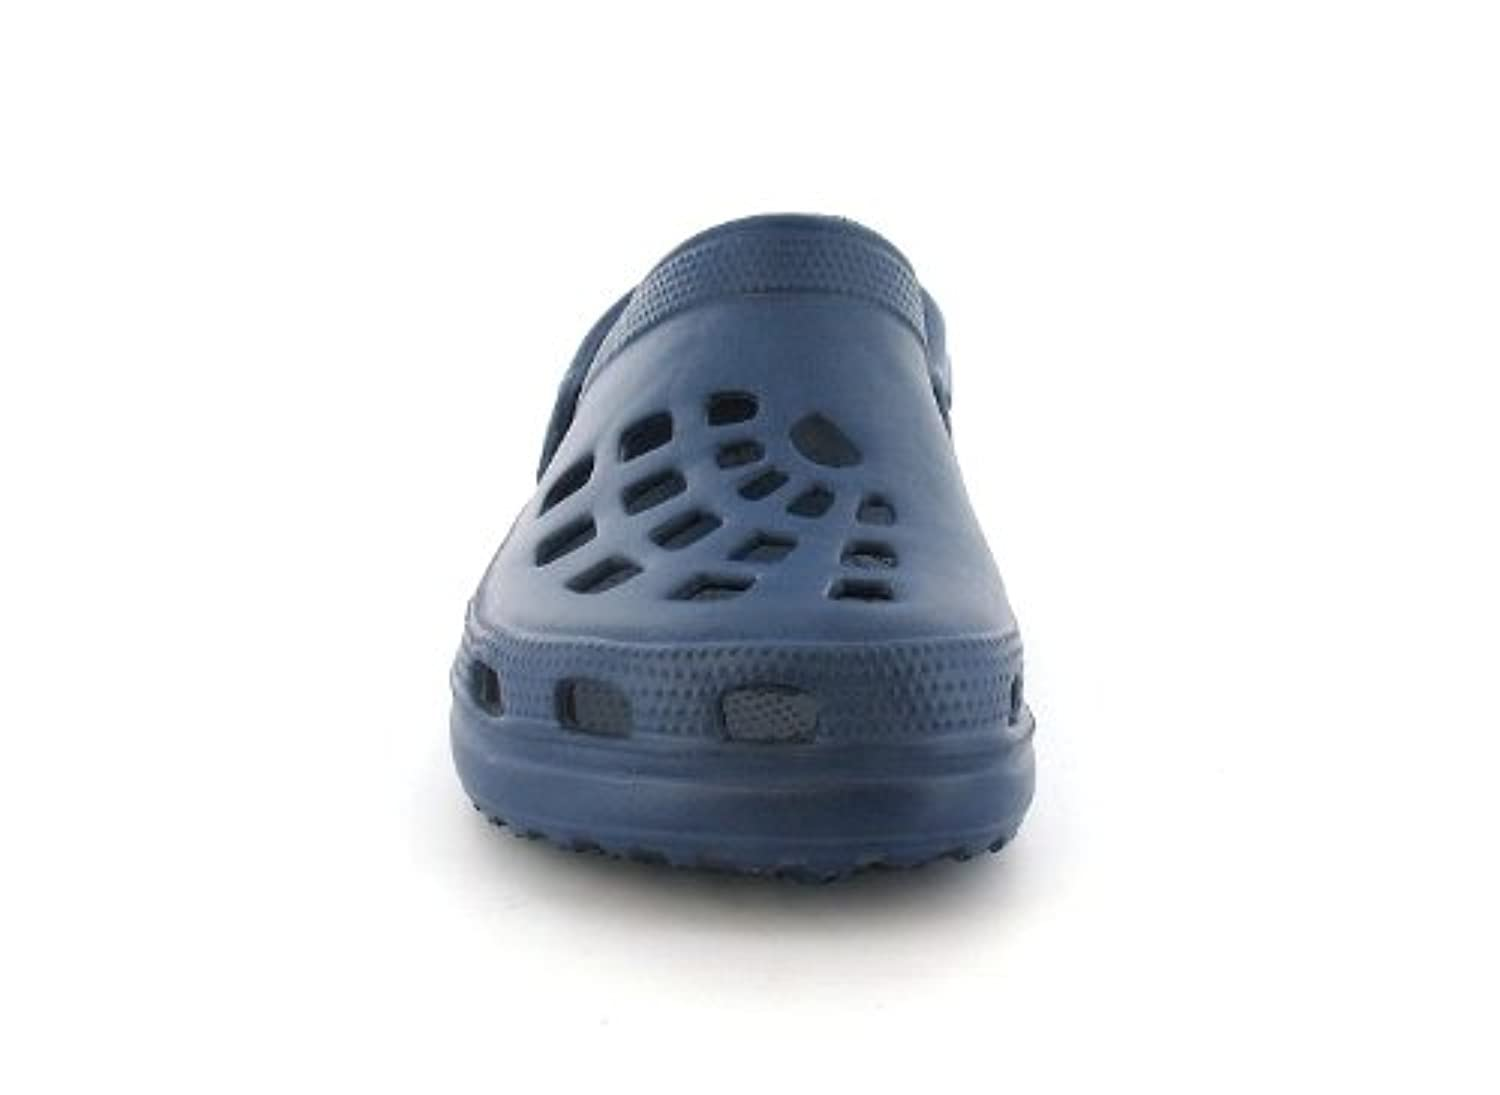 New Boys/Childrens Blue Moulded Clog Sandals With Moveable Back Straps - Navy - UK SIZE 3